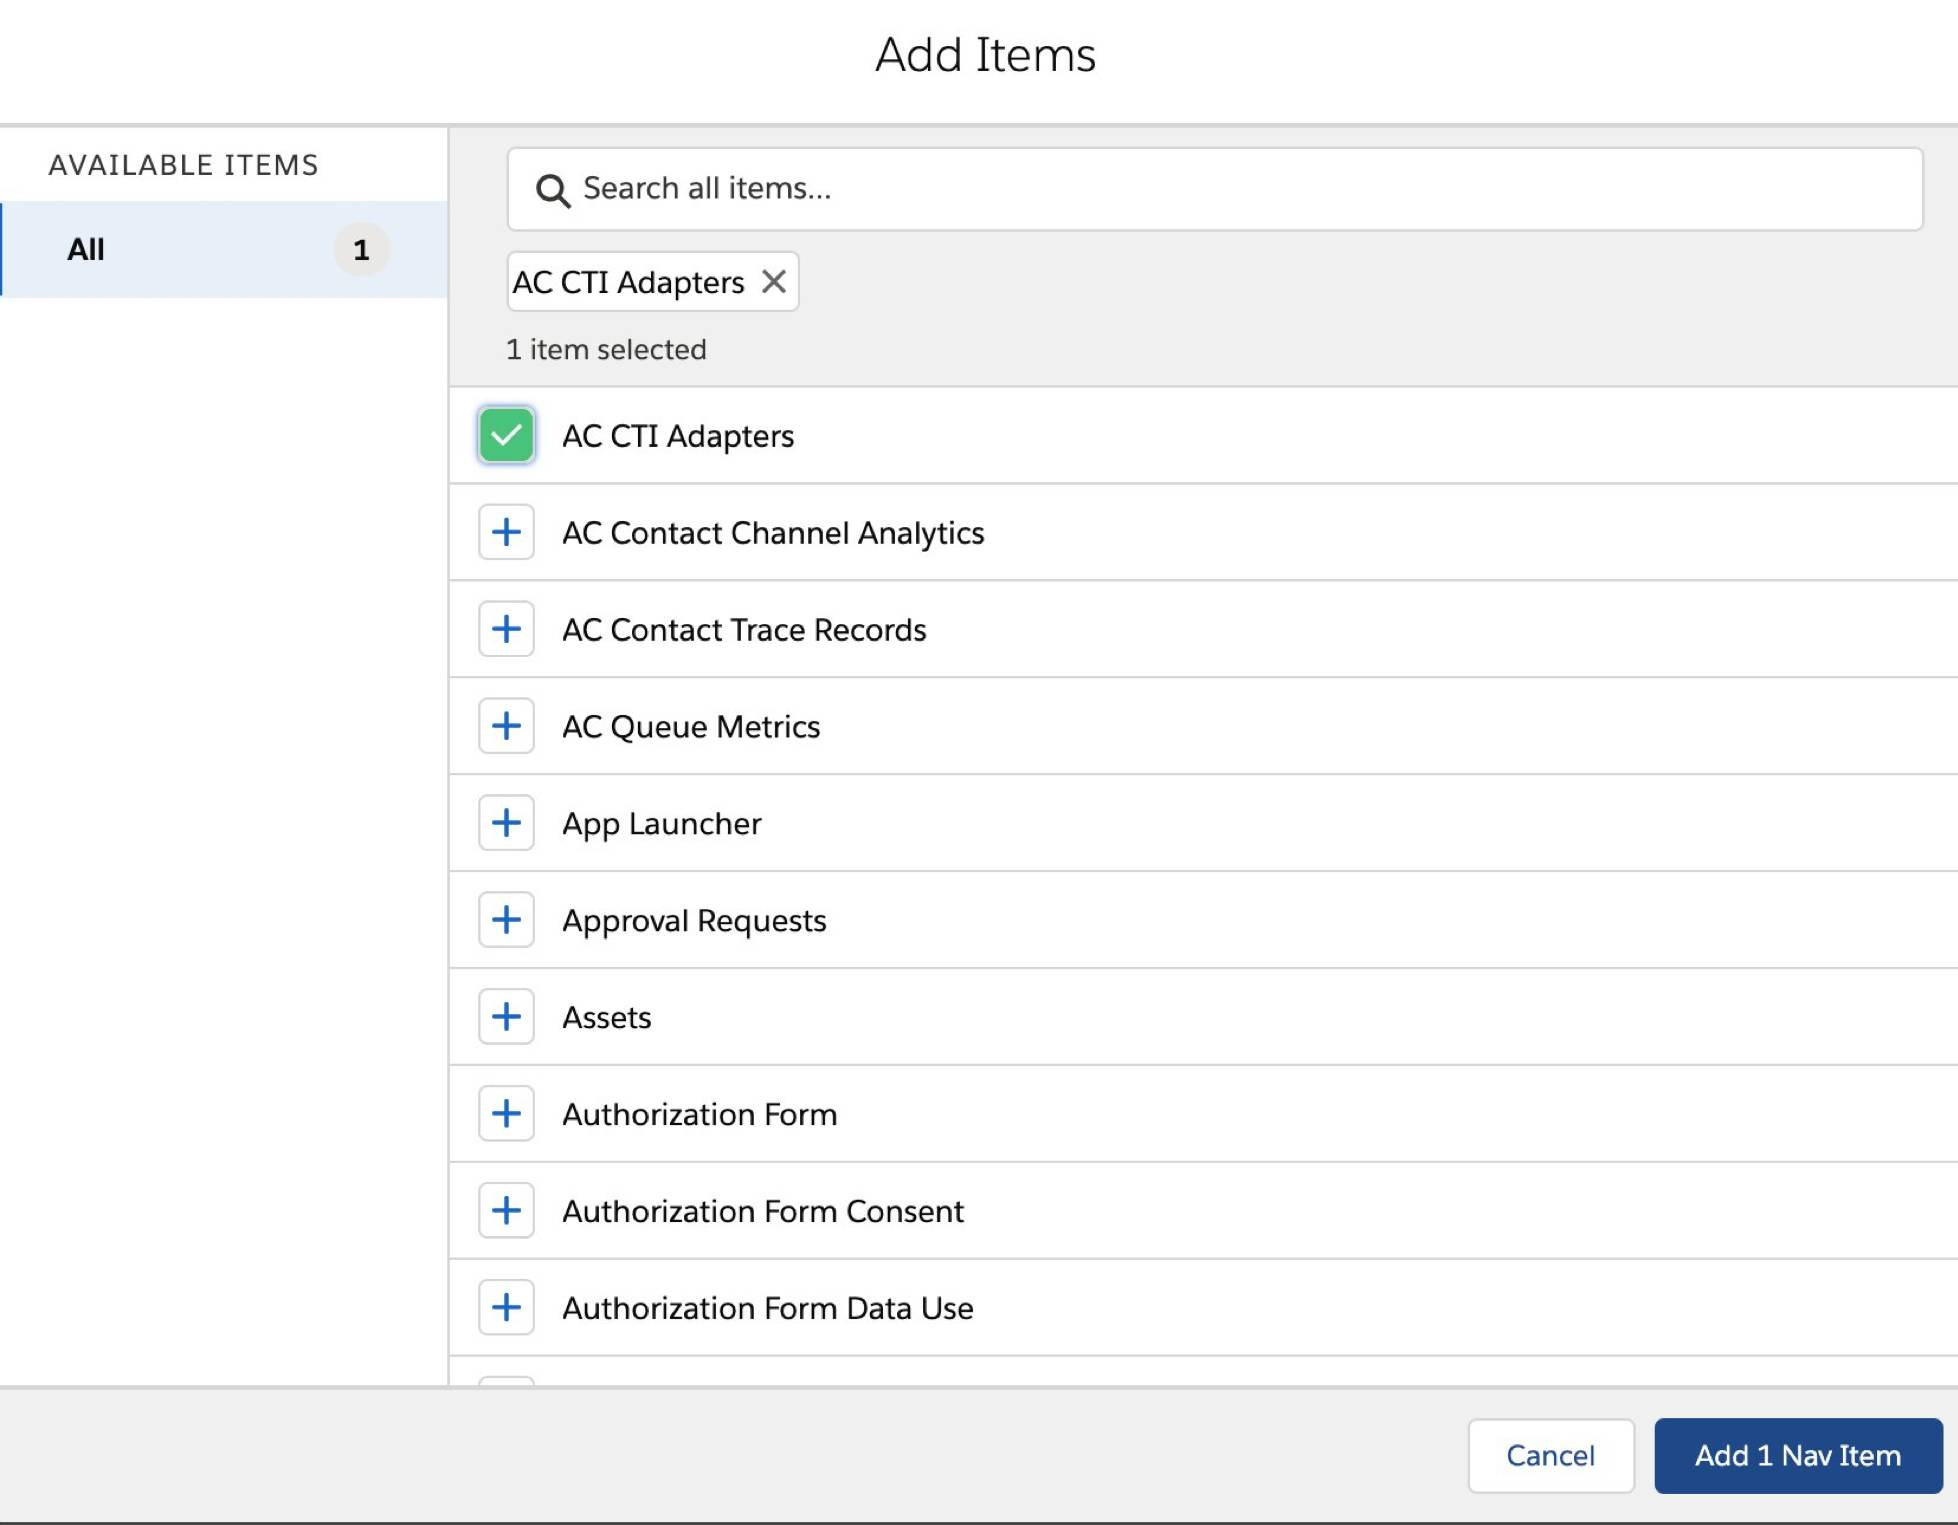 AC CTI Adapters selected in Add Items screen